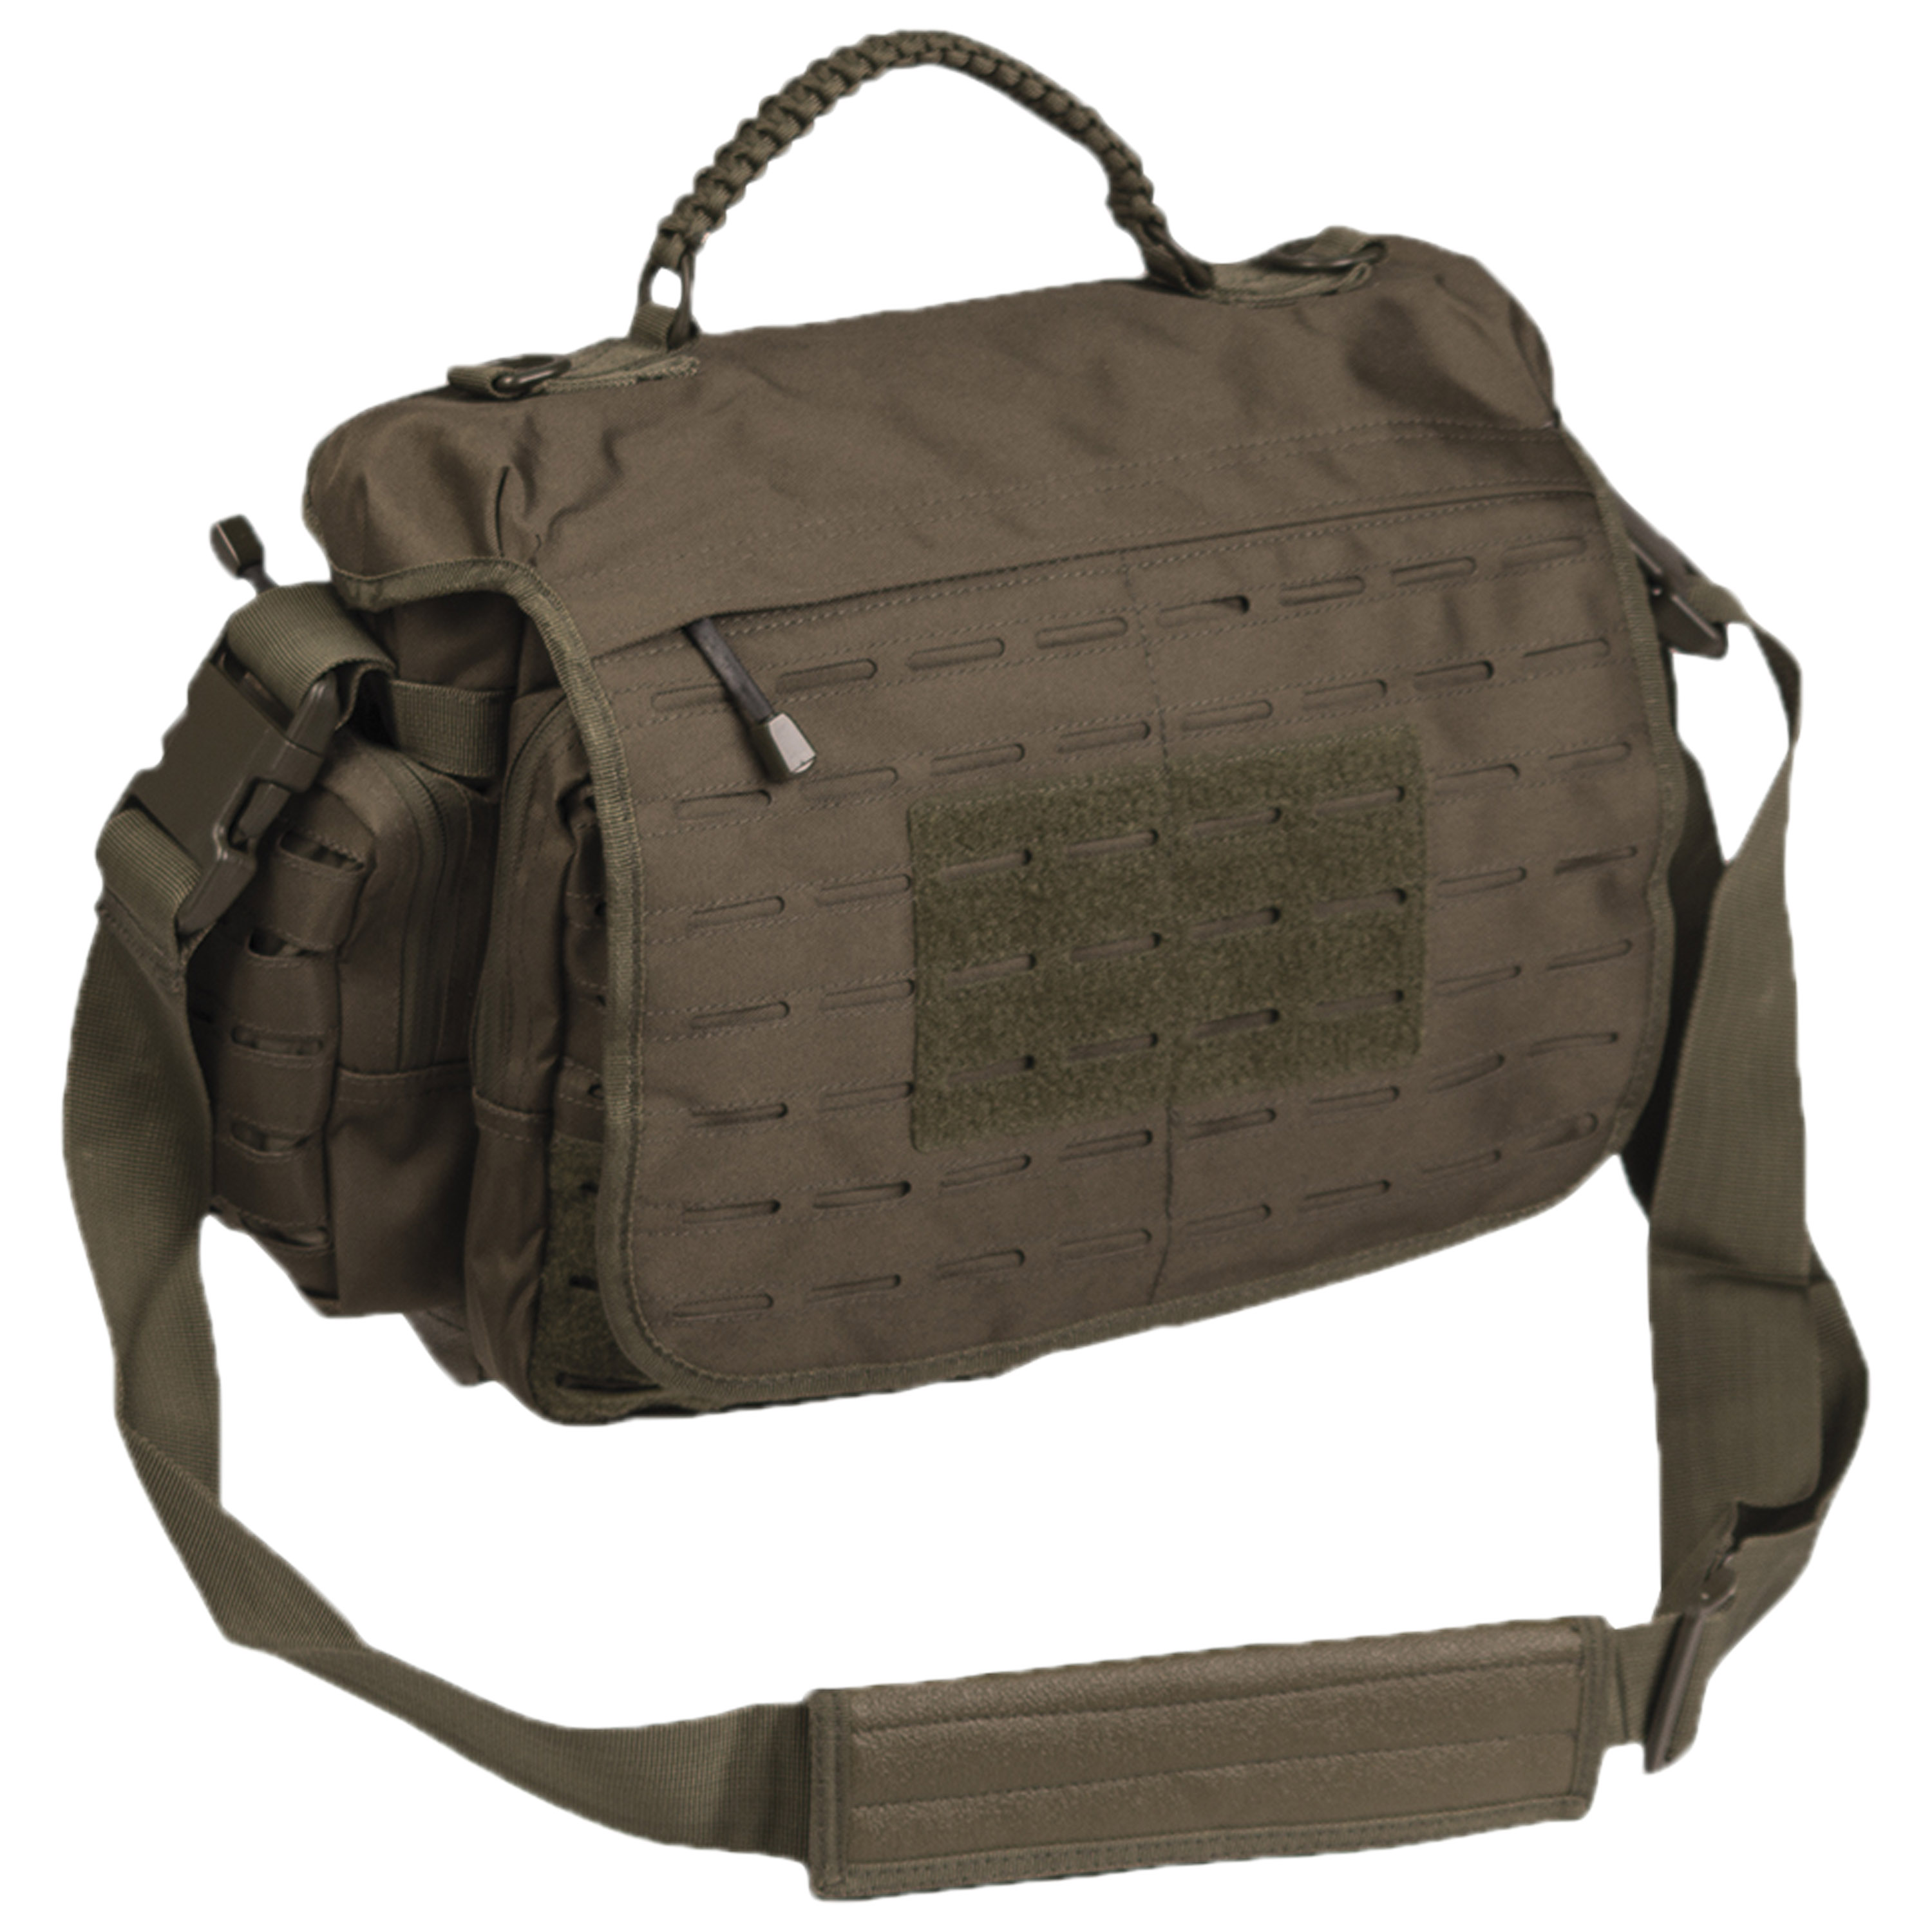 Tasche Tactical Paracord LG oliv